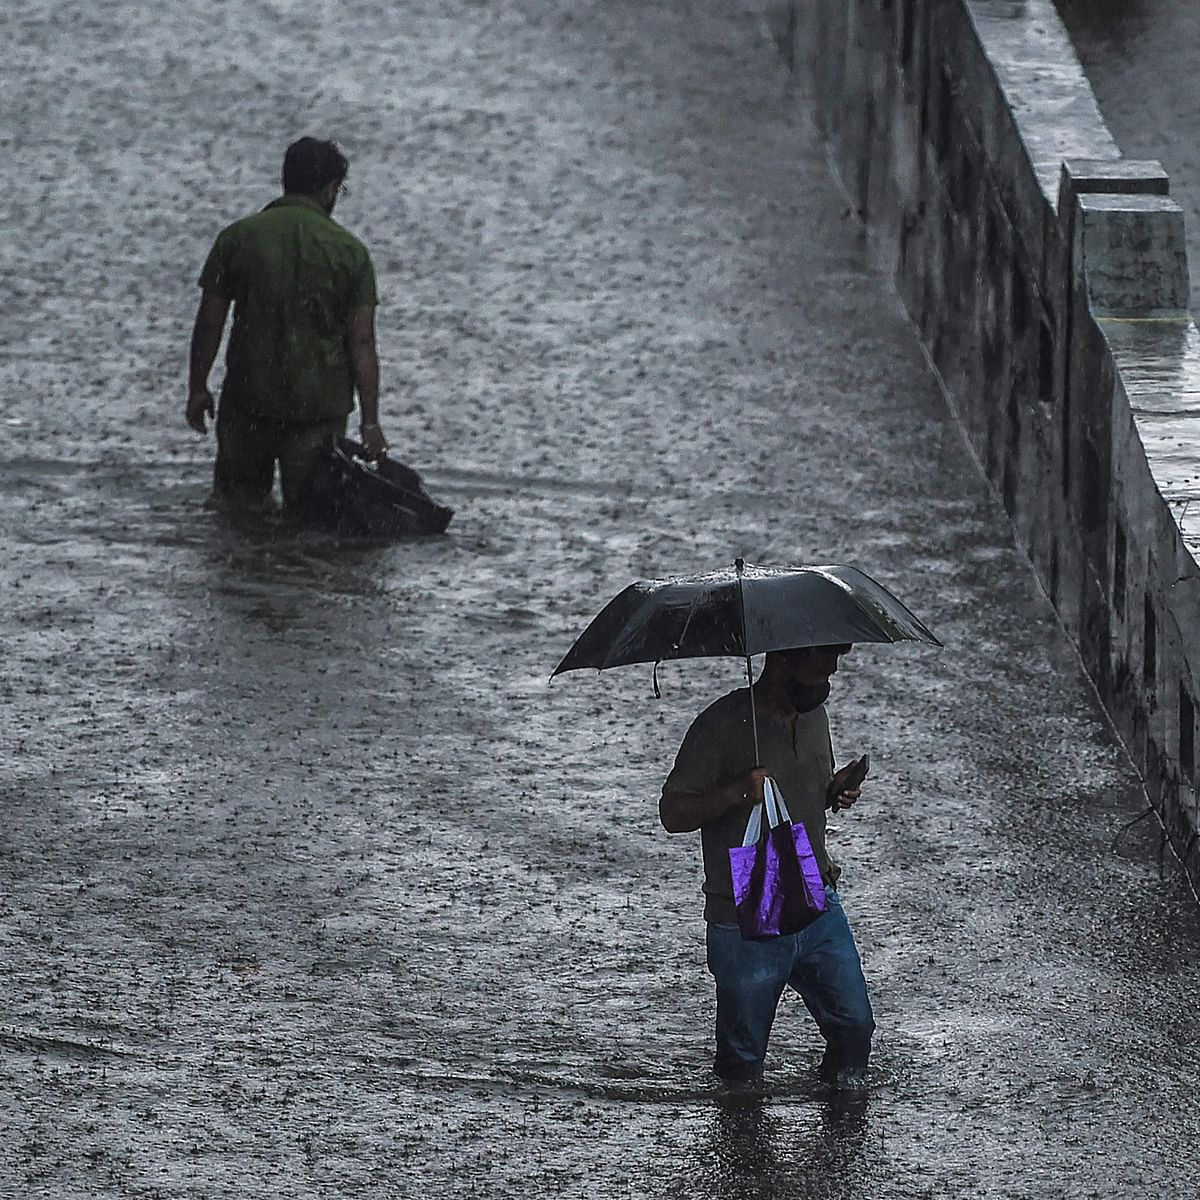 Mumbai weather update: IMD predicts moderate to heavy rainfall today; city agencies on high alert